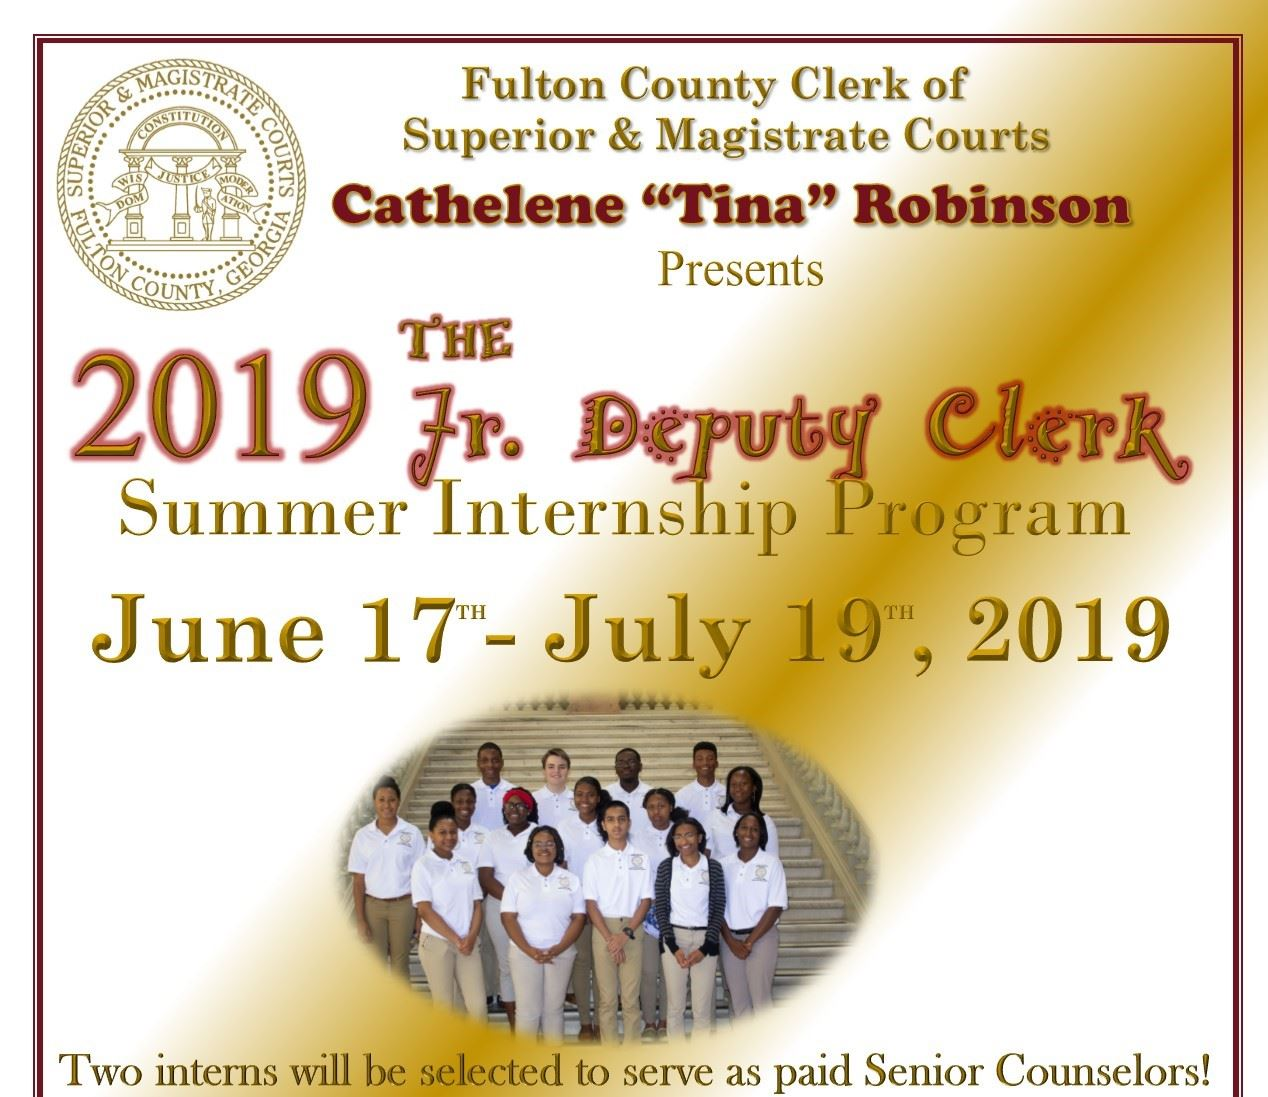 Jr. Deputy Clerk 2019 Flyer Temp 22